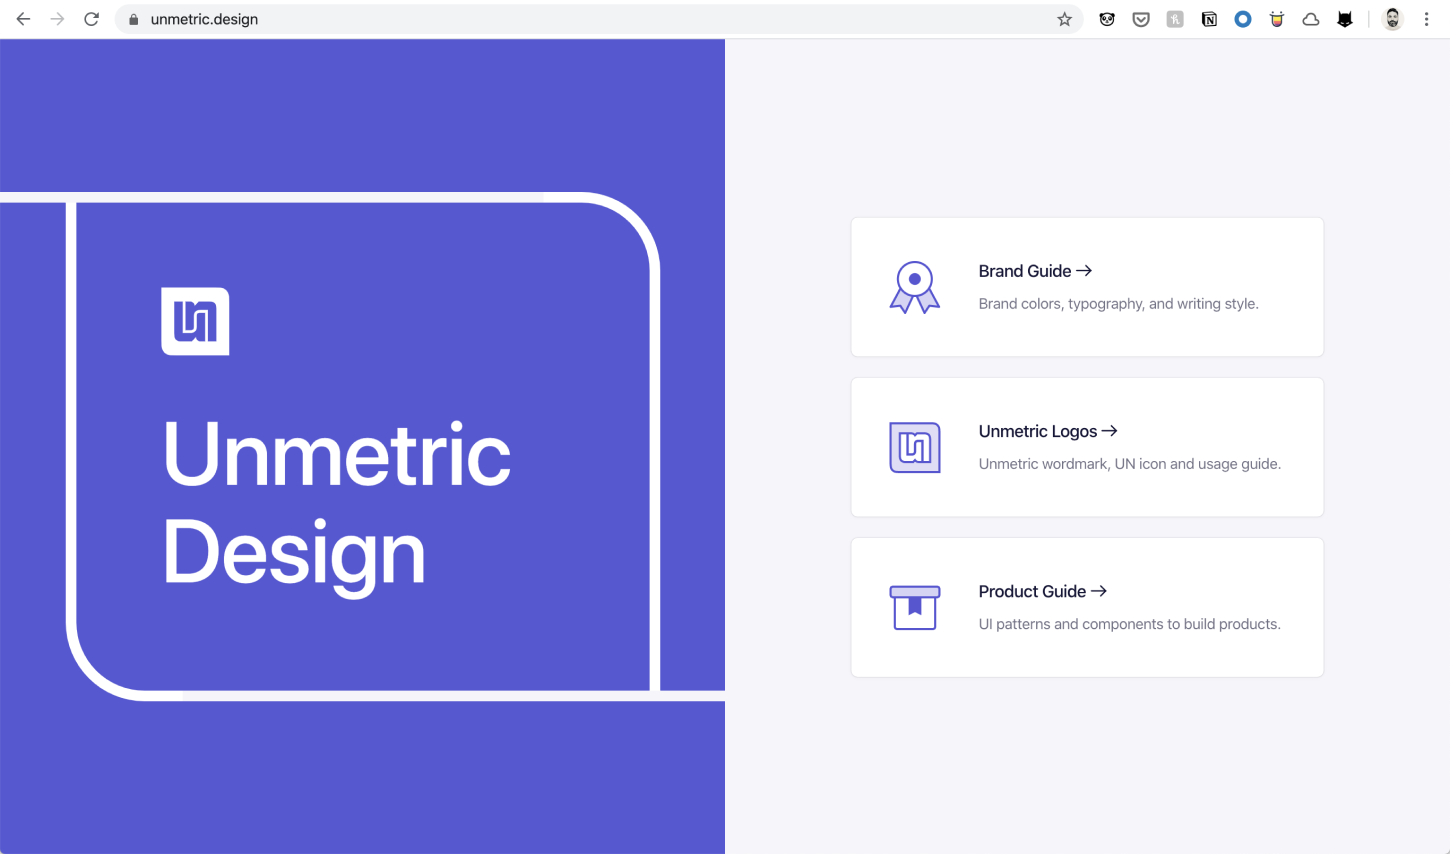 Unmetric.design Homepage